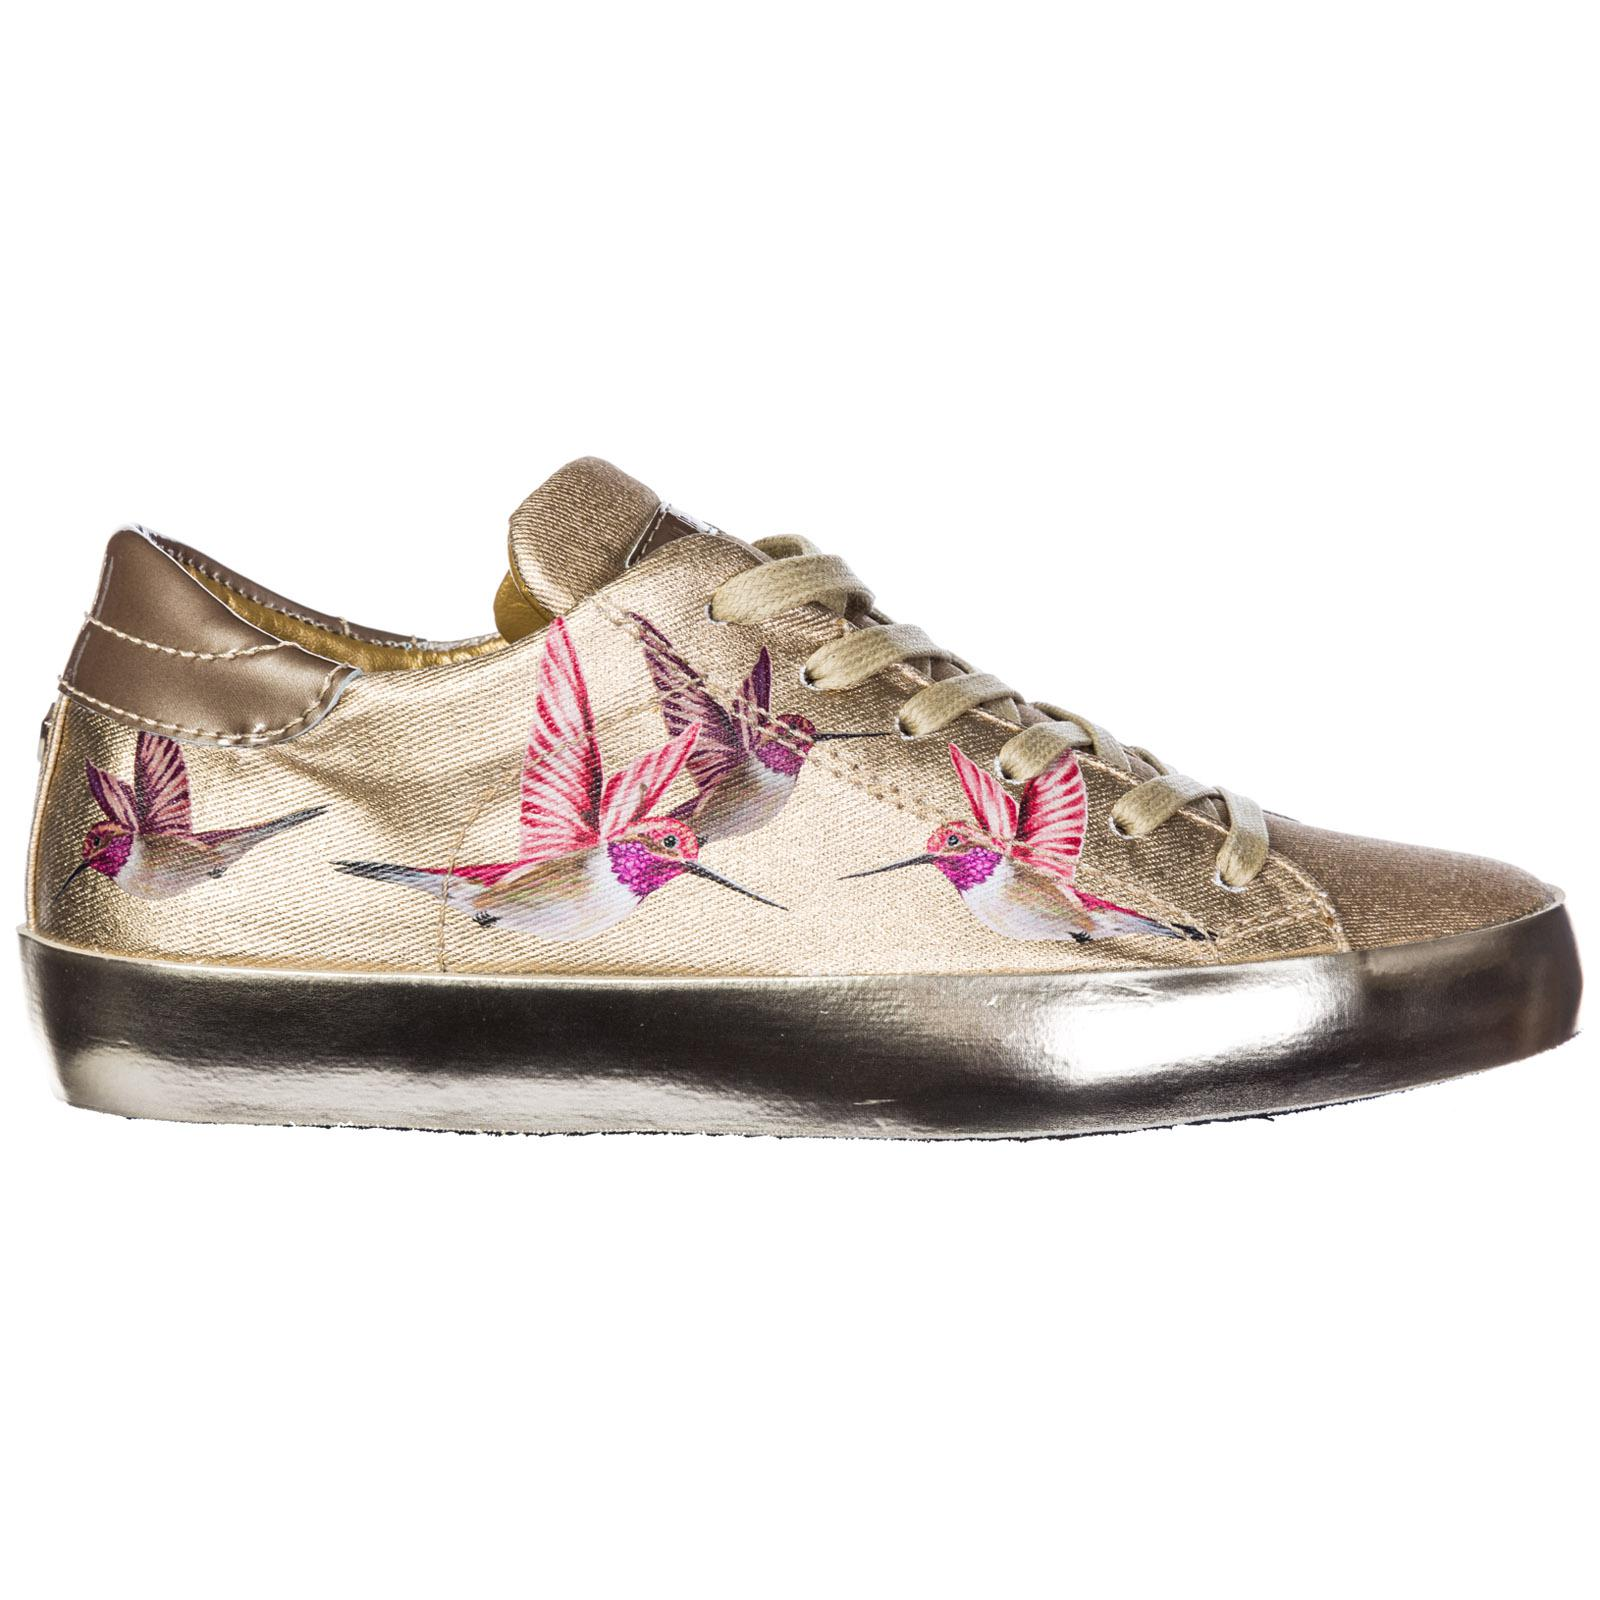 26a71e4c7d9b5 Lyst - Philippe Model Shoes Trainers Sneakers Paris Bird in Pink